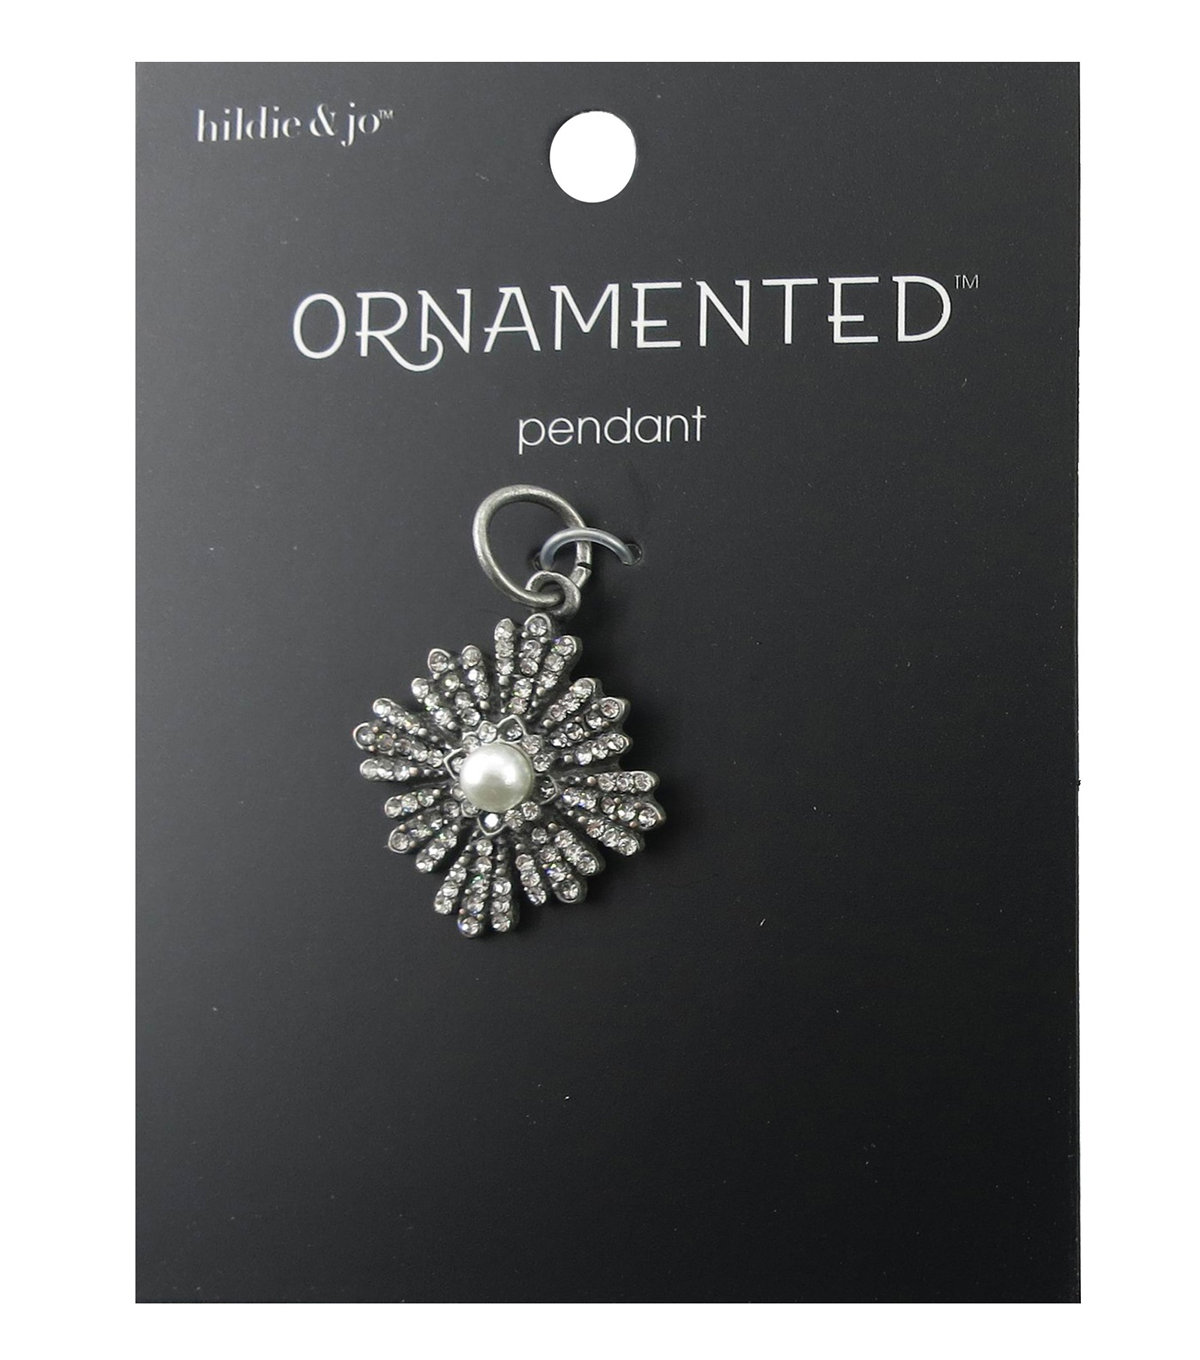 hildie & jo™ Ornamented Flower Antique Silver Pendant-Pearl